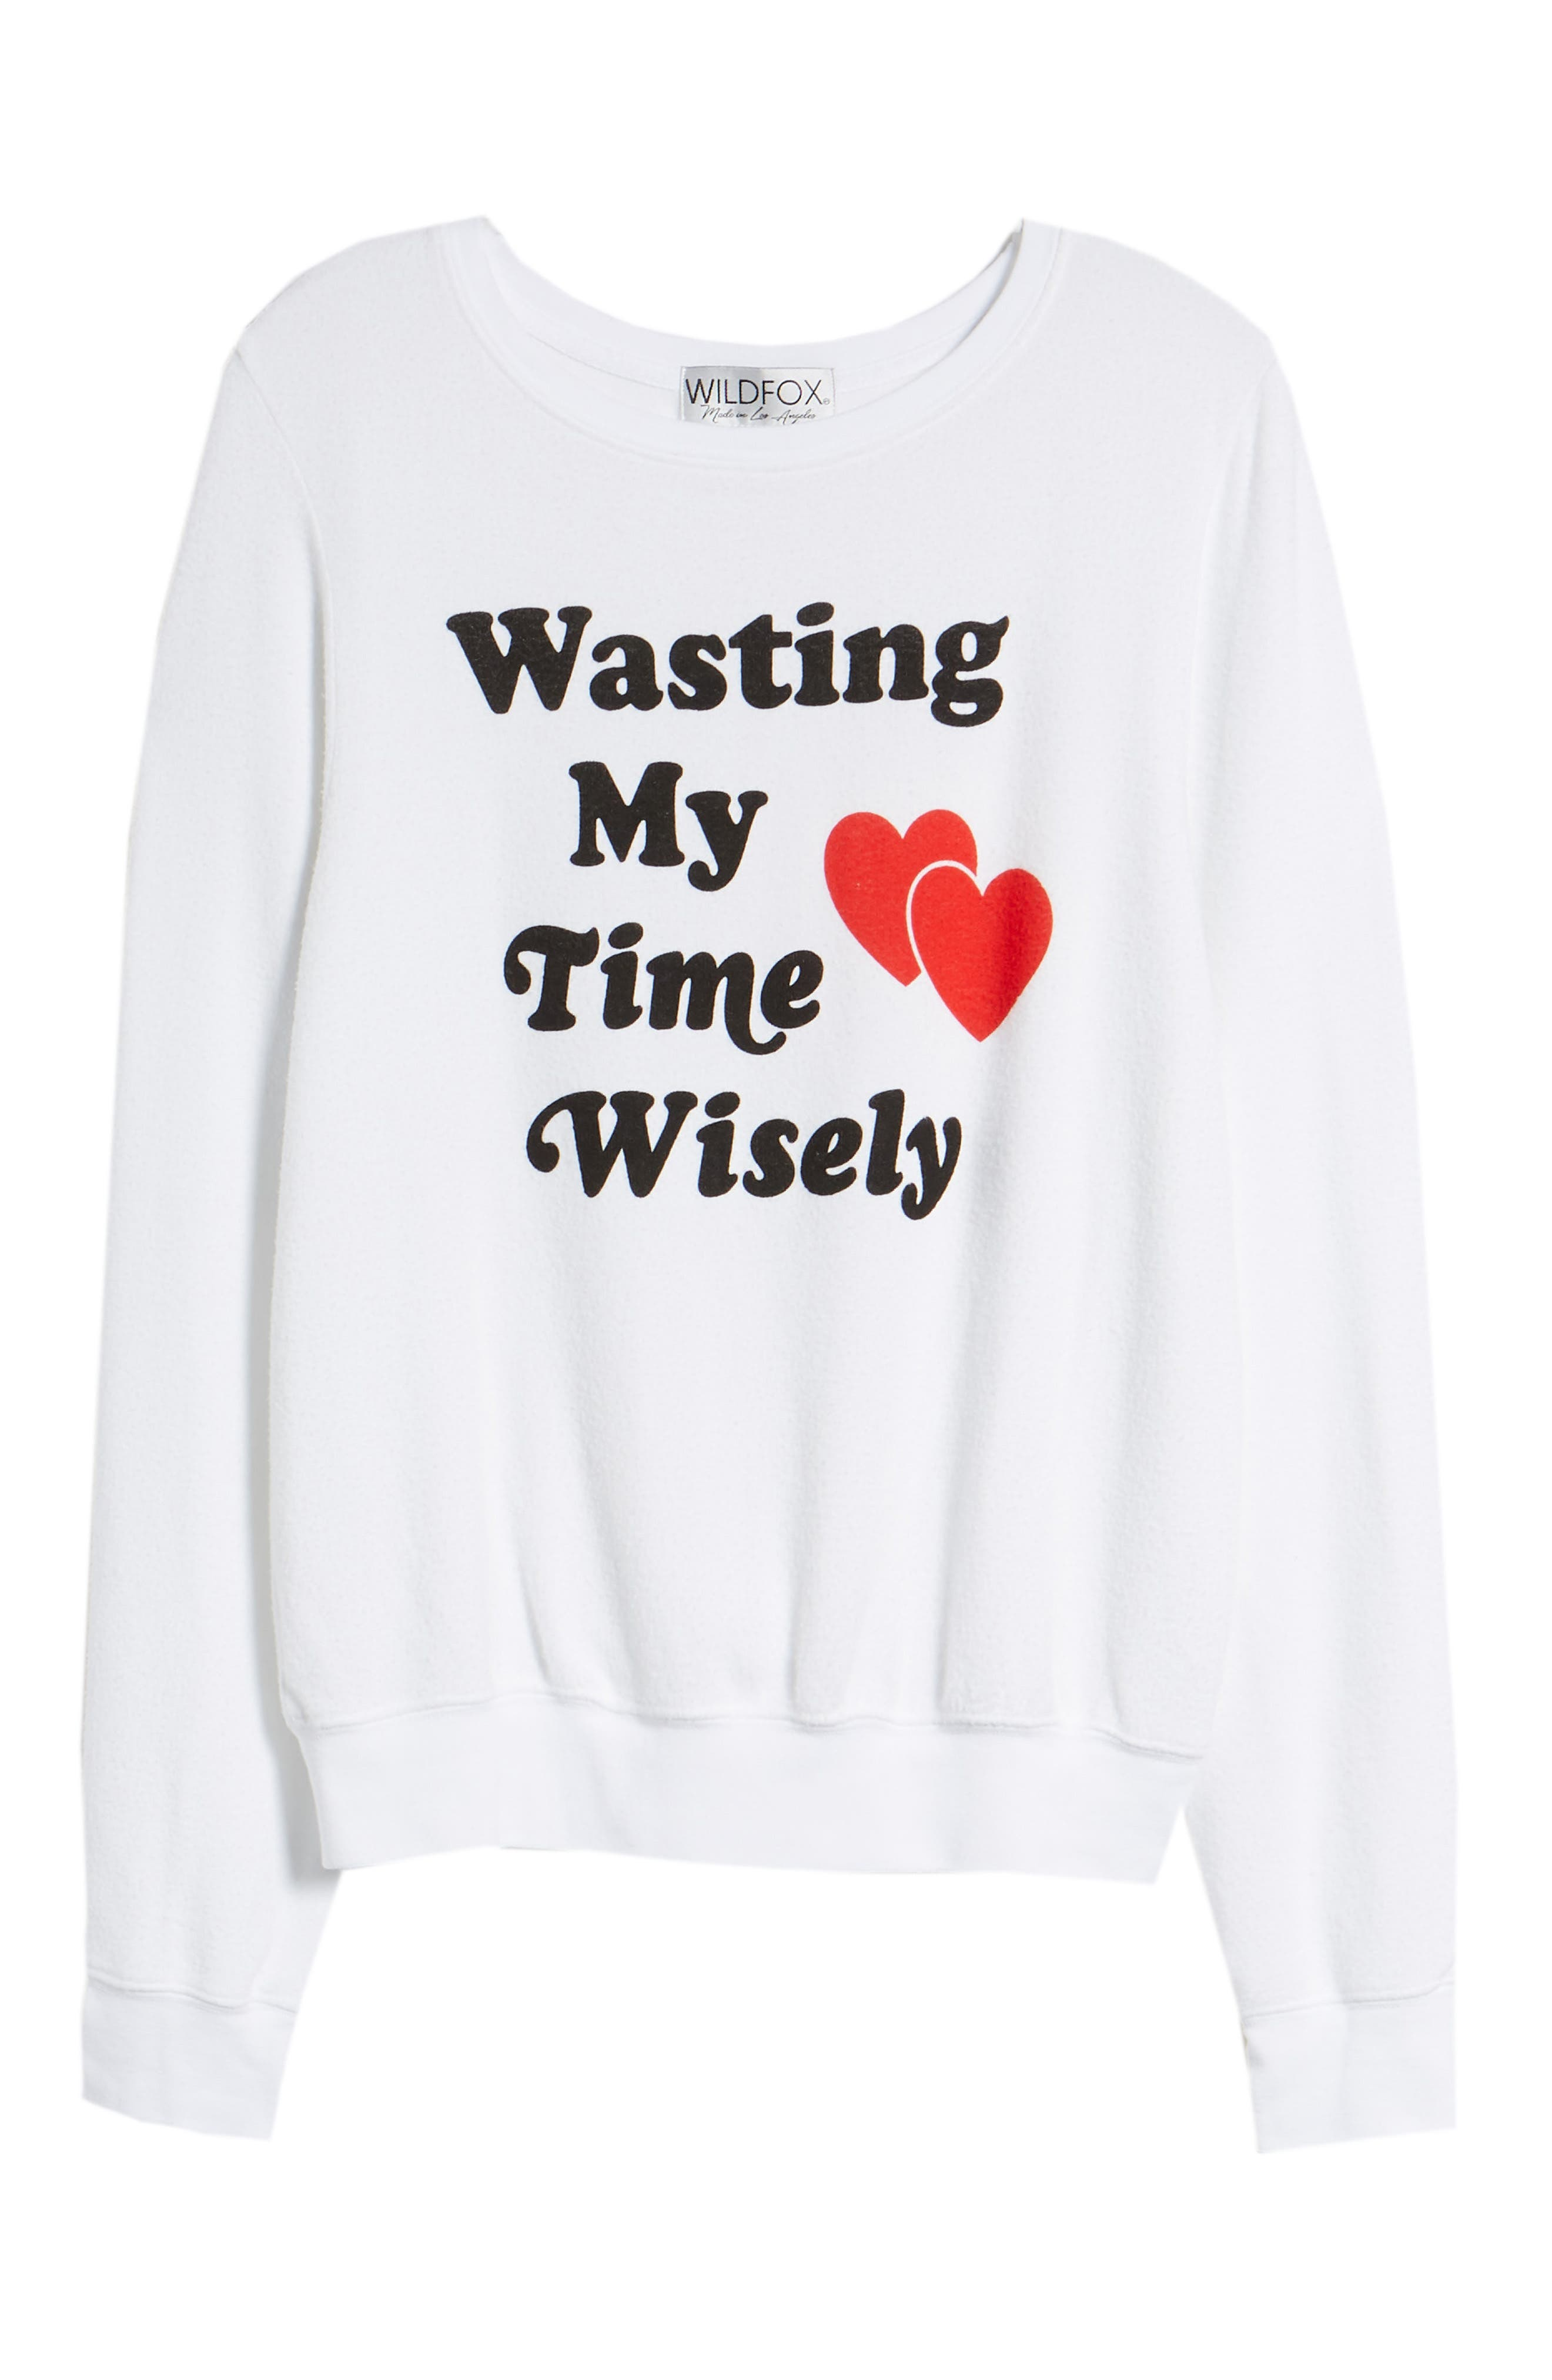 Wasting My Time Wisely Baggy Beach Sweatshirt,                             Alternate thumbnail 7, color,                             100